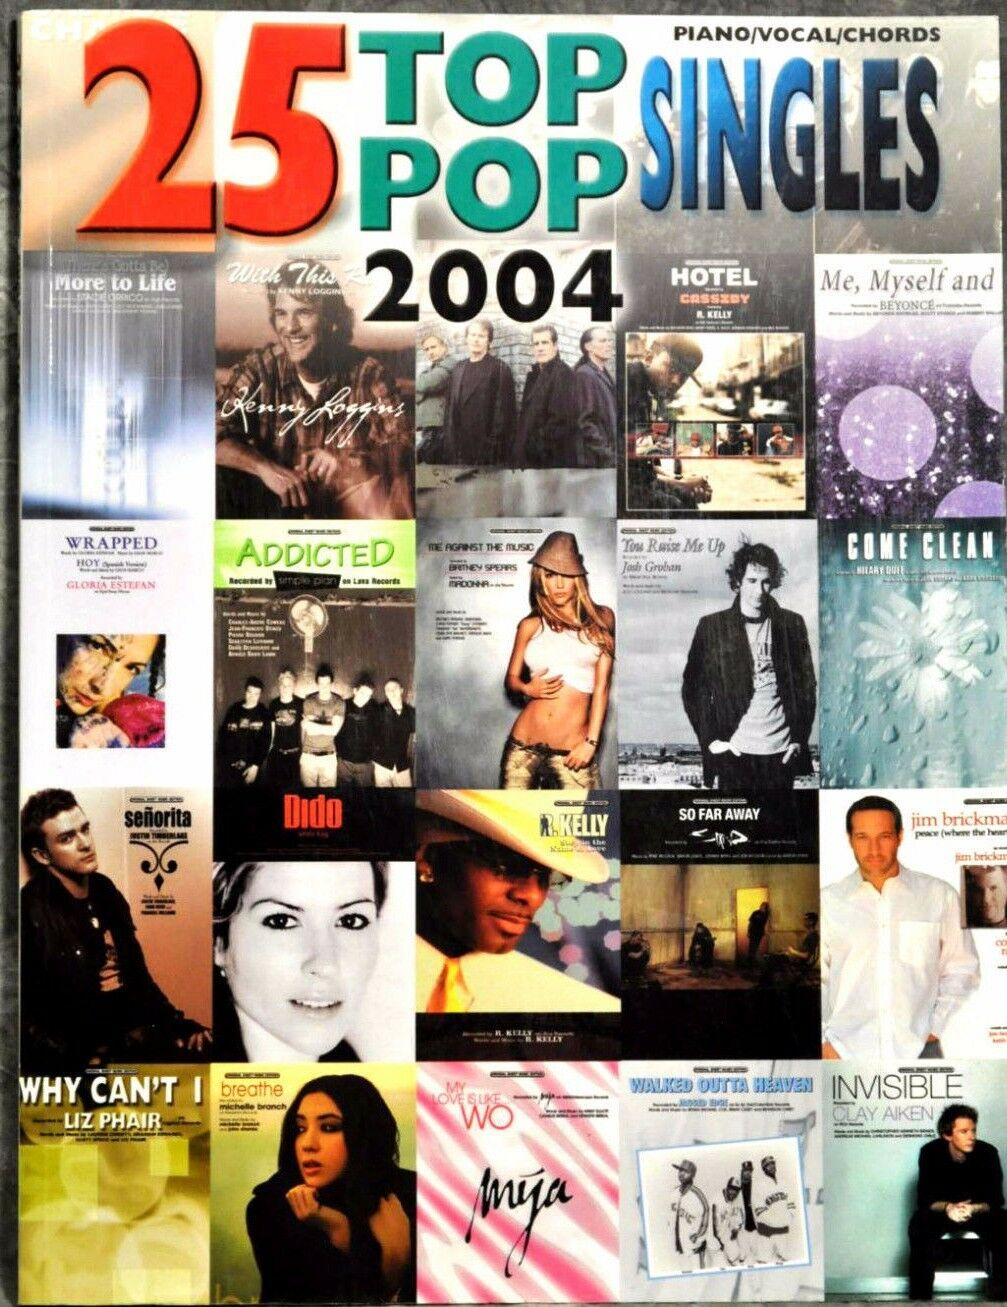 25 Top Pop Singles Of 2004 Pianovocalguitar Chords Music Book